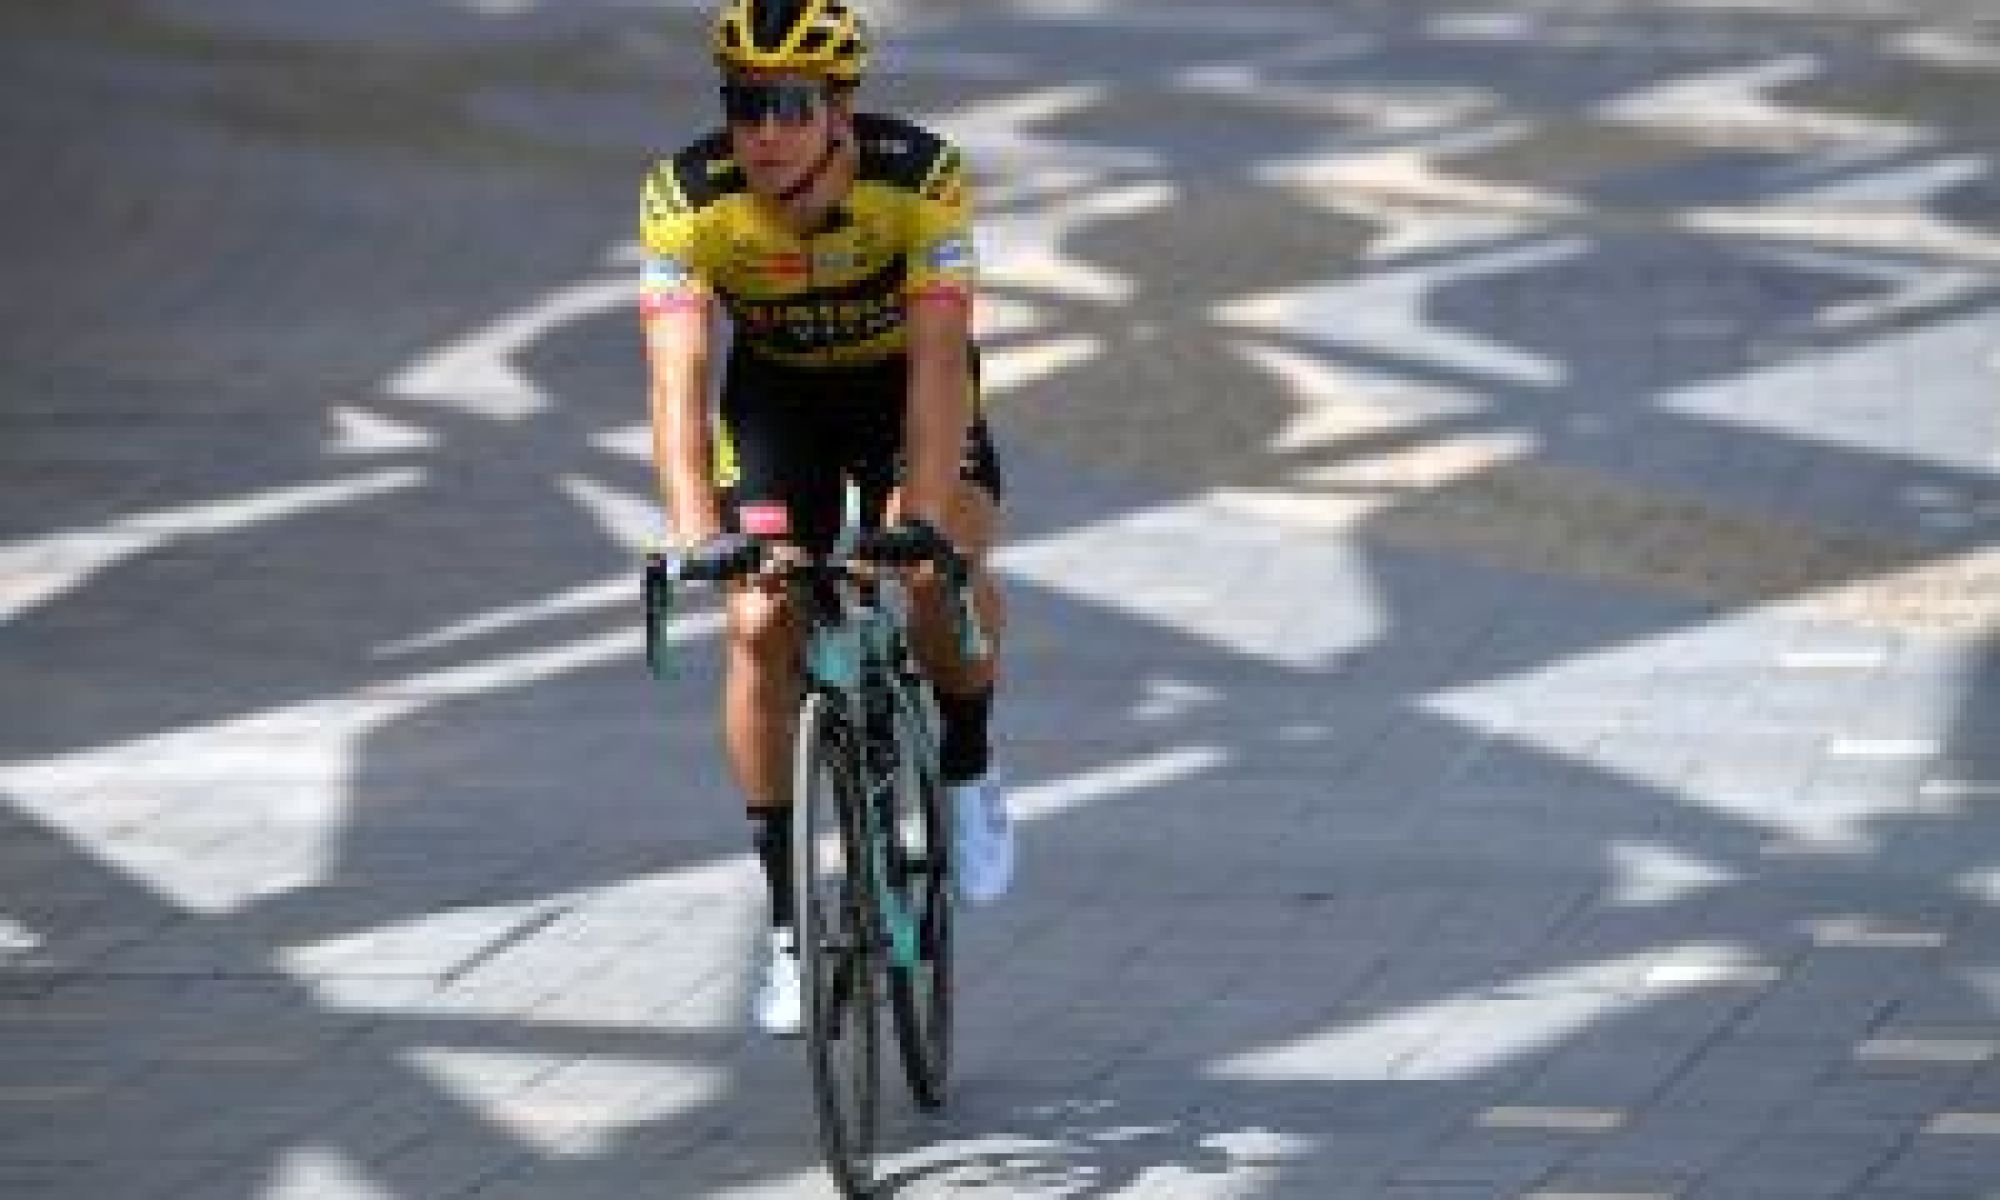 Patrick Lefevere says he takes back his comments about putting Dylan Groenewegen in jail